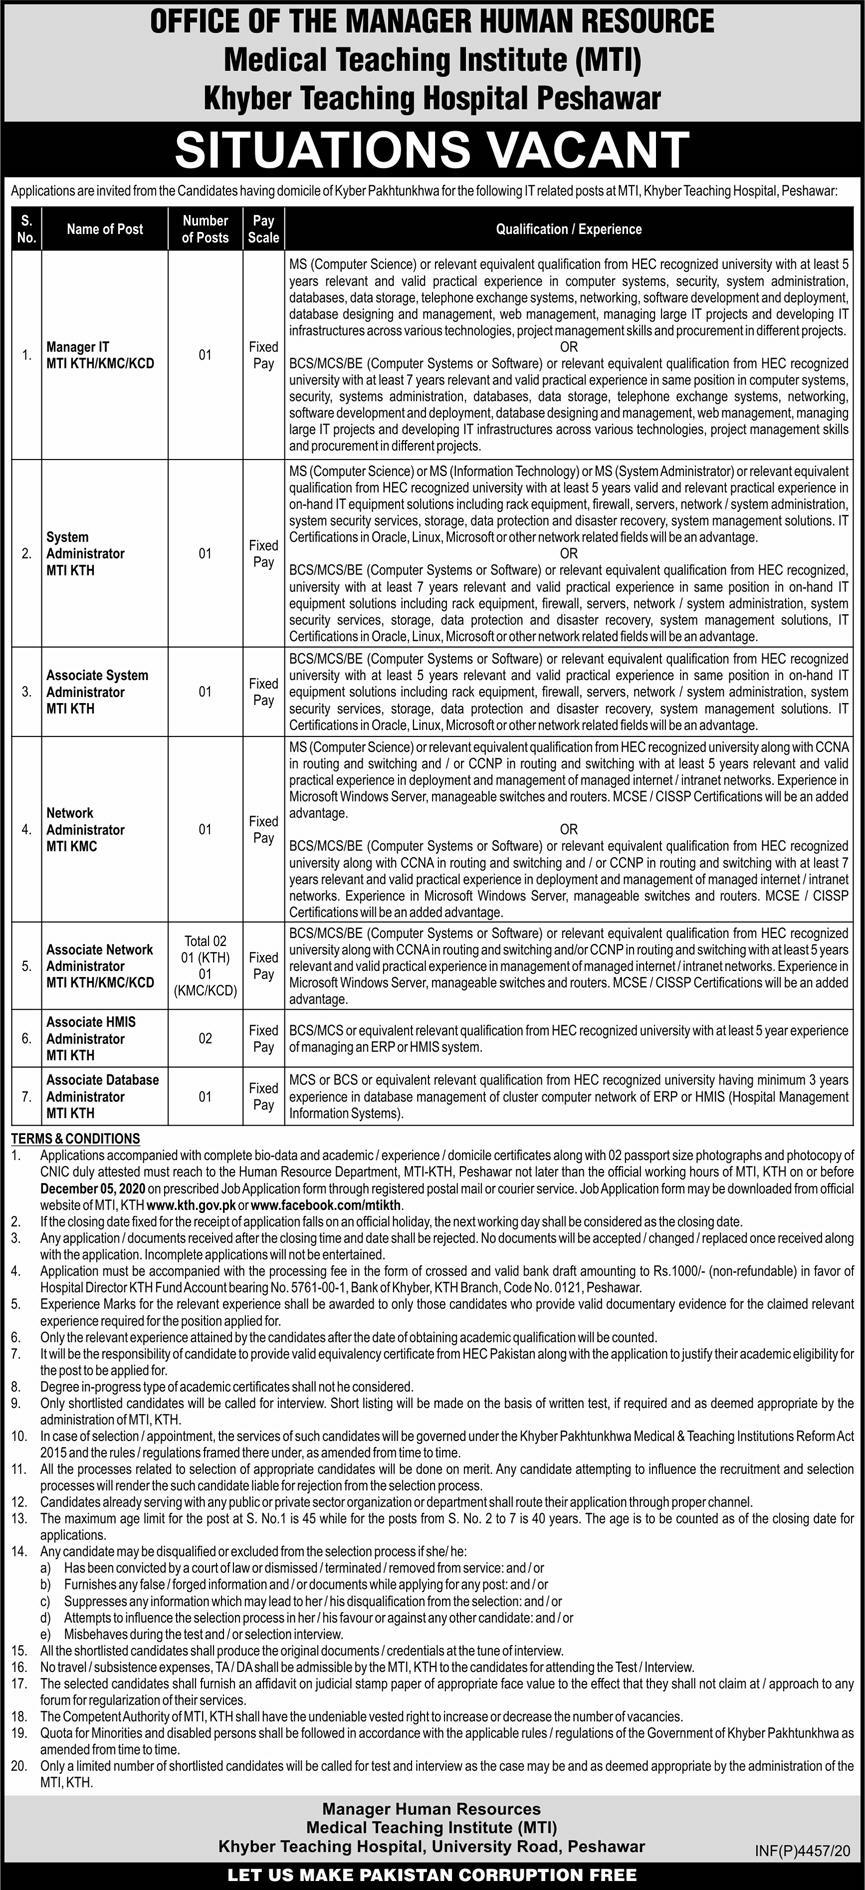 Medical Teaching Institute (MTI) Khyber Teaching Hospital Peshawar Jobs November 2020